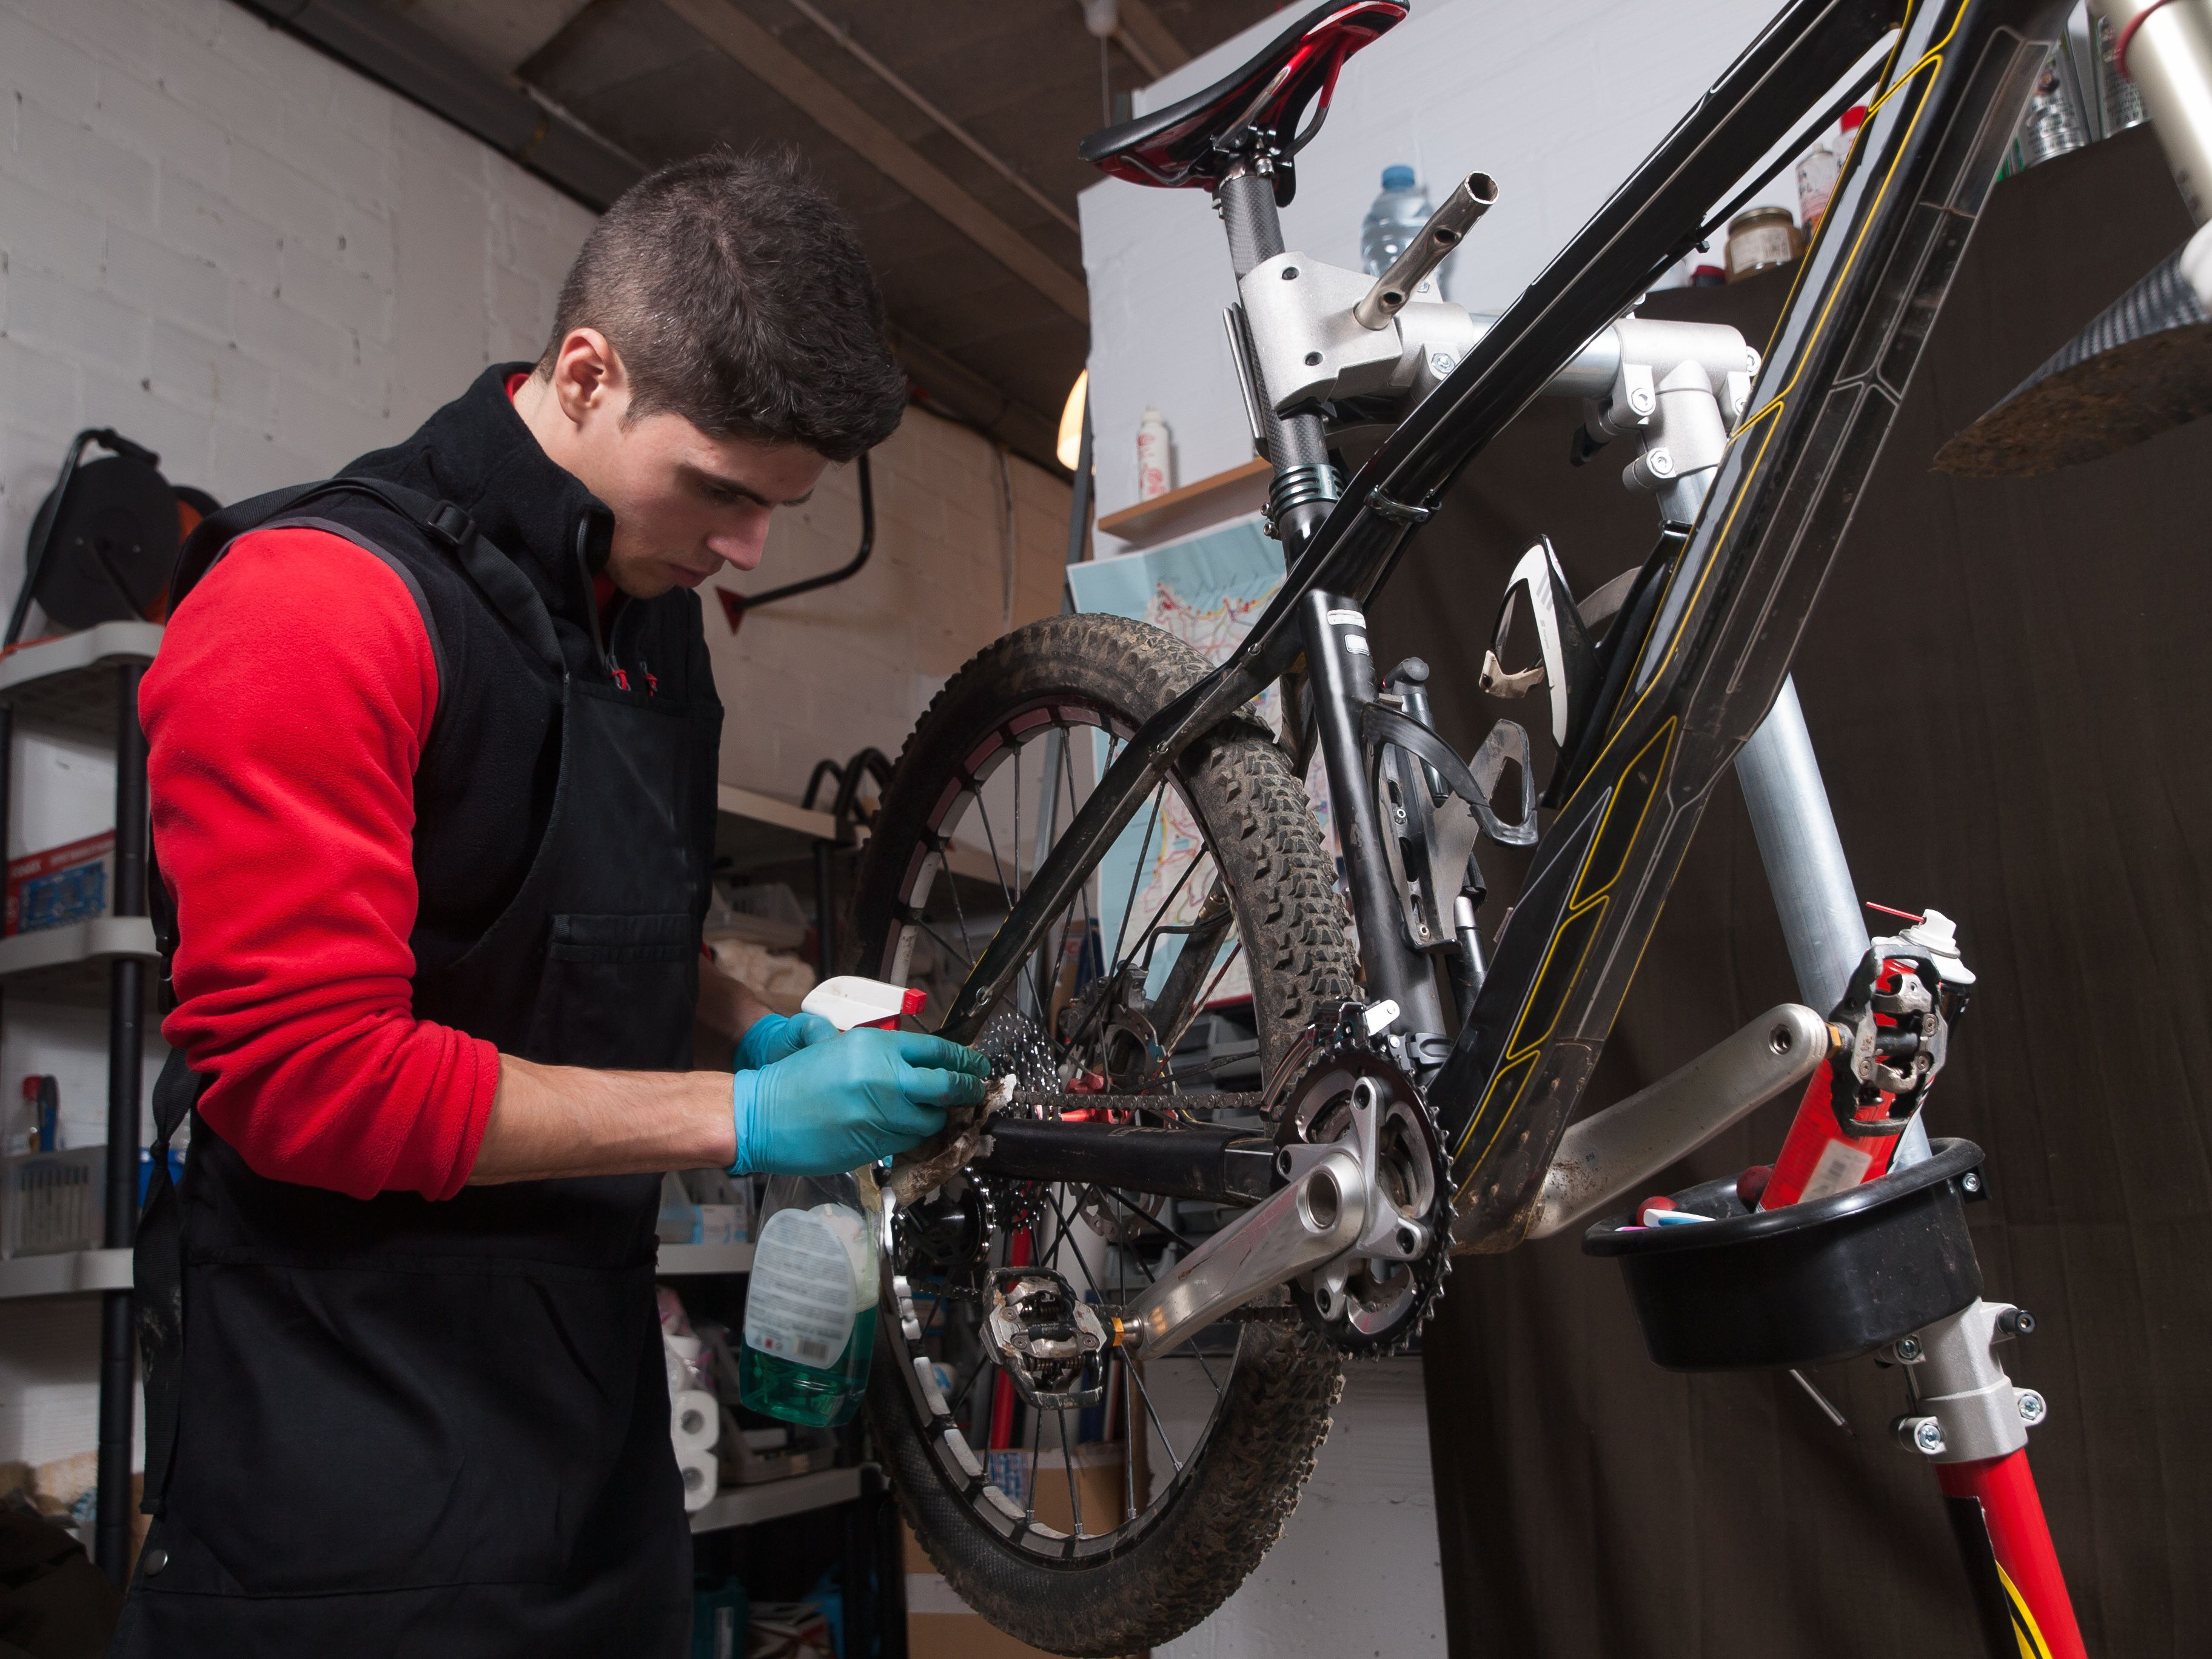 How To Clean Your Bike In 10 Minutes After A Ride In The Rain